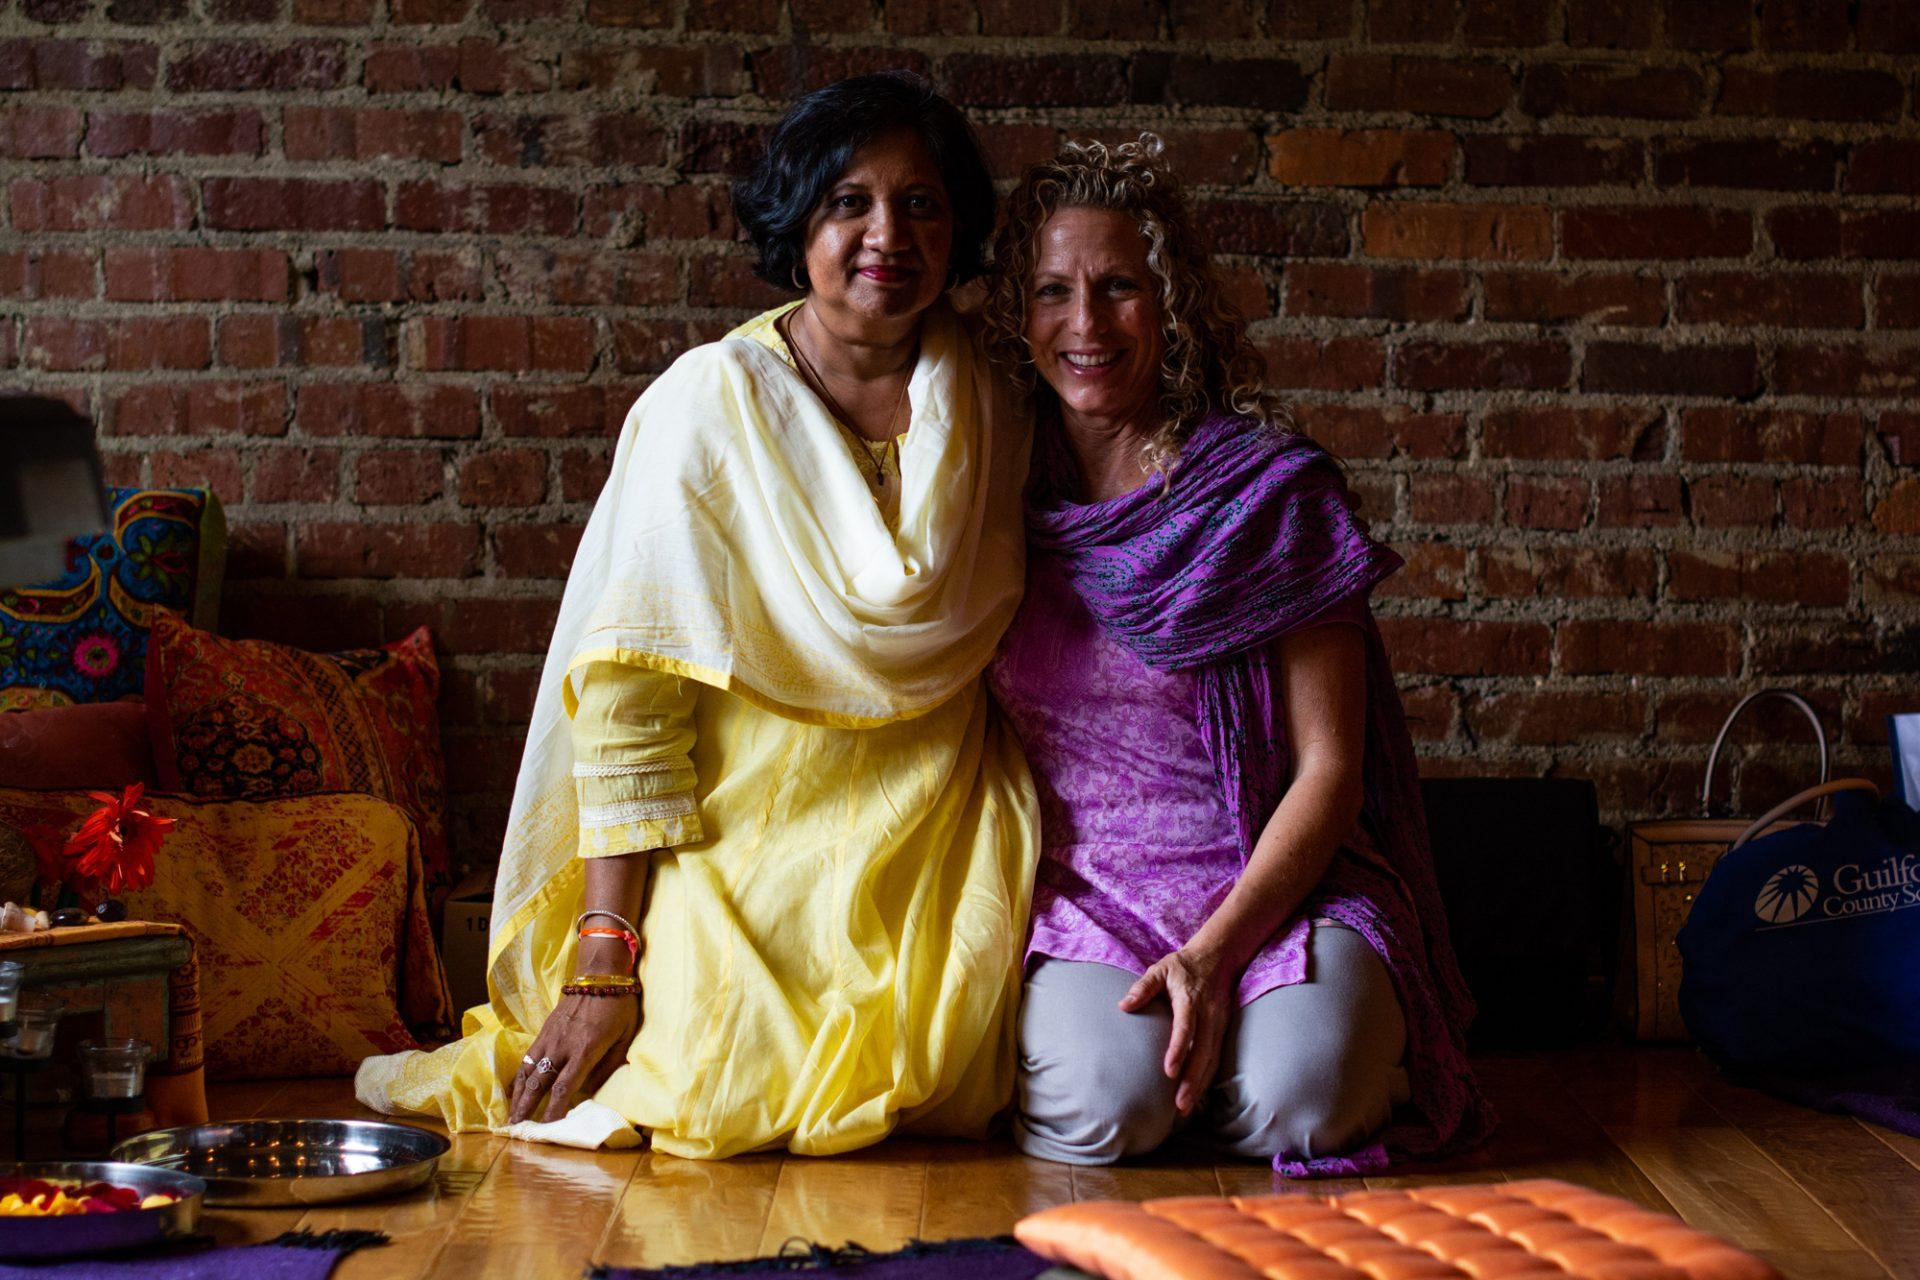 Christine Sita Dave (left) is the founder of EDGE, or Education for Girls Empowerment. Sita Dave's longtime friend of Valerie Midgett (right) is the owner of Neighborhood Yoga.